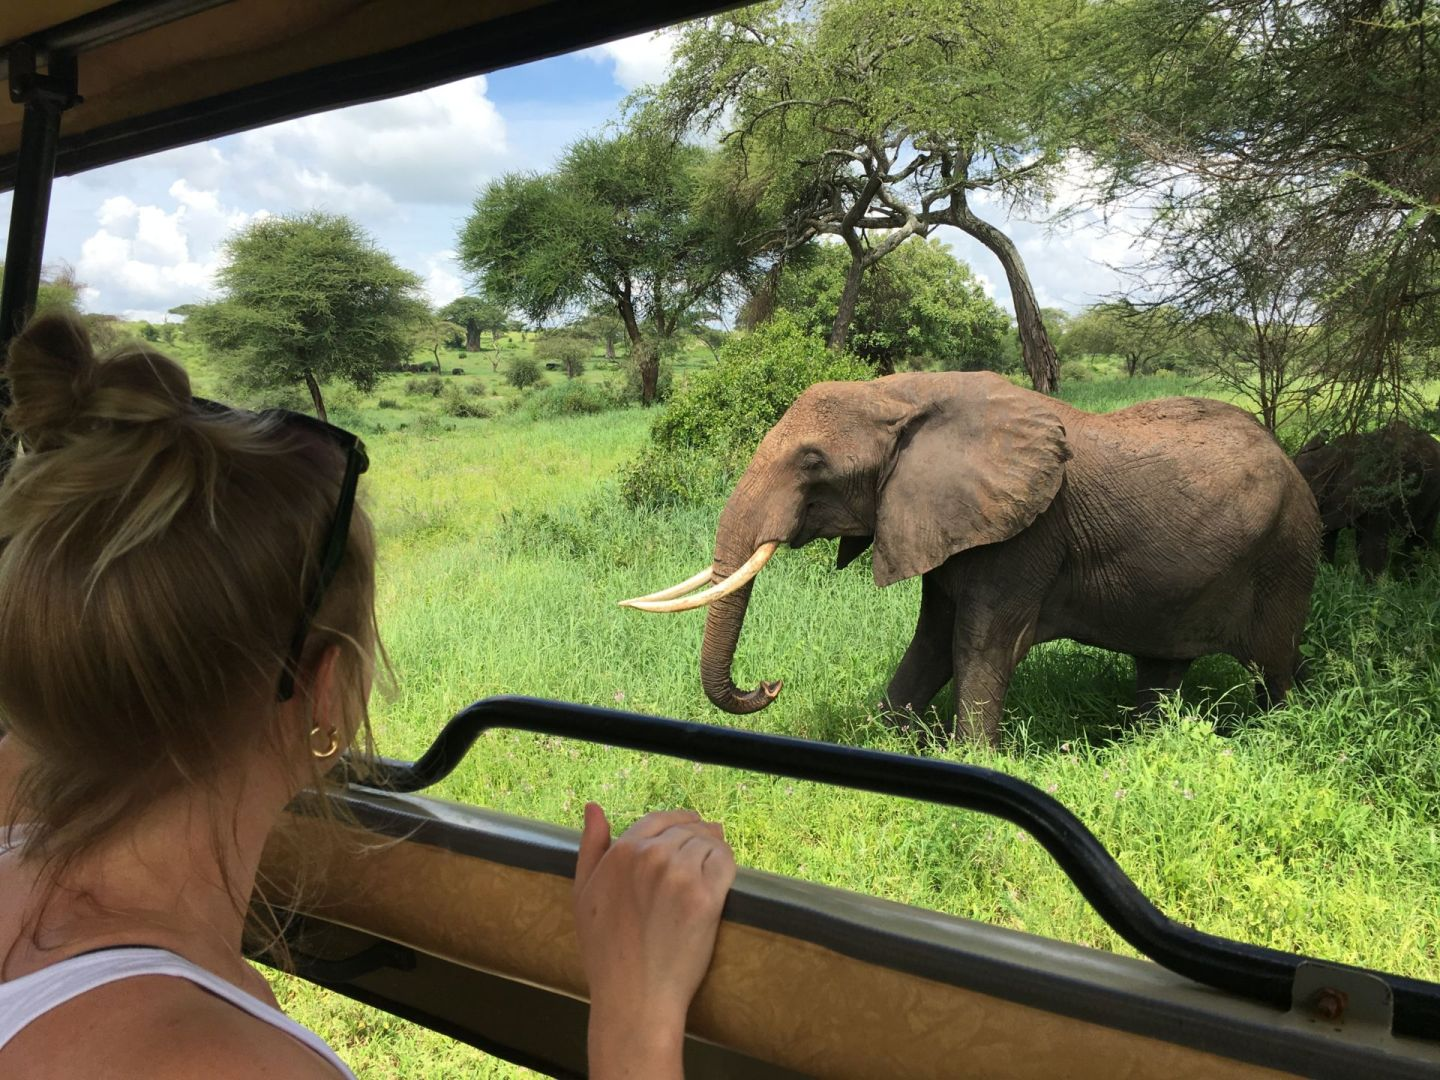 Seeing elephants in Tarangire National Park on safari